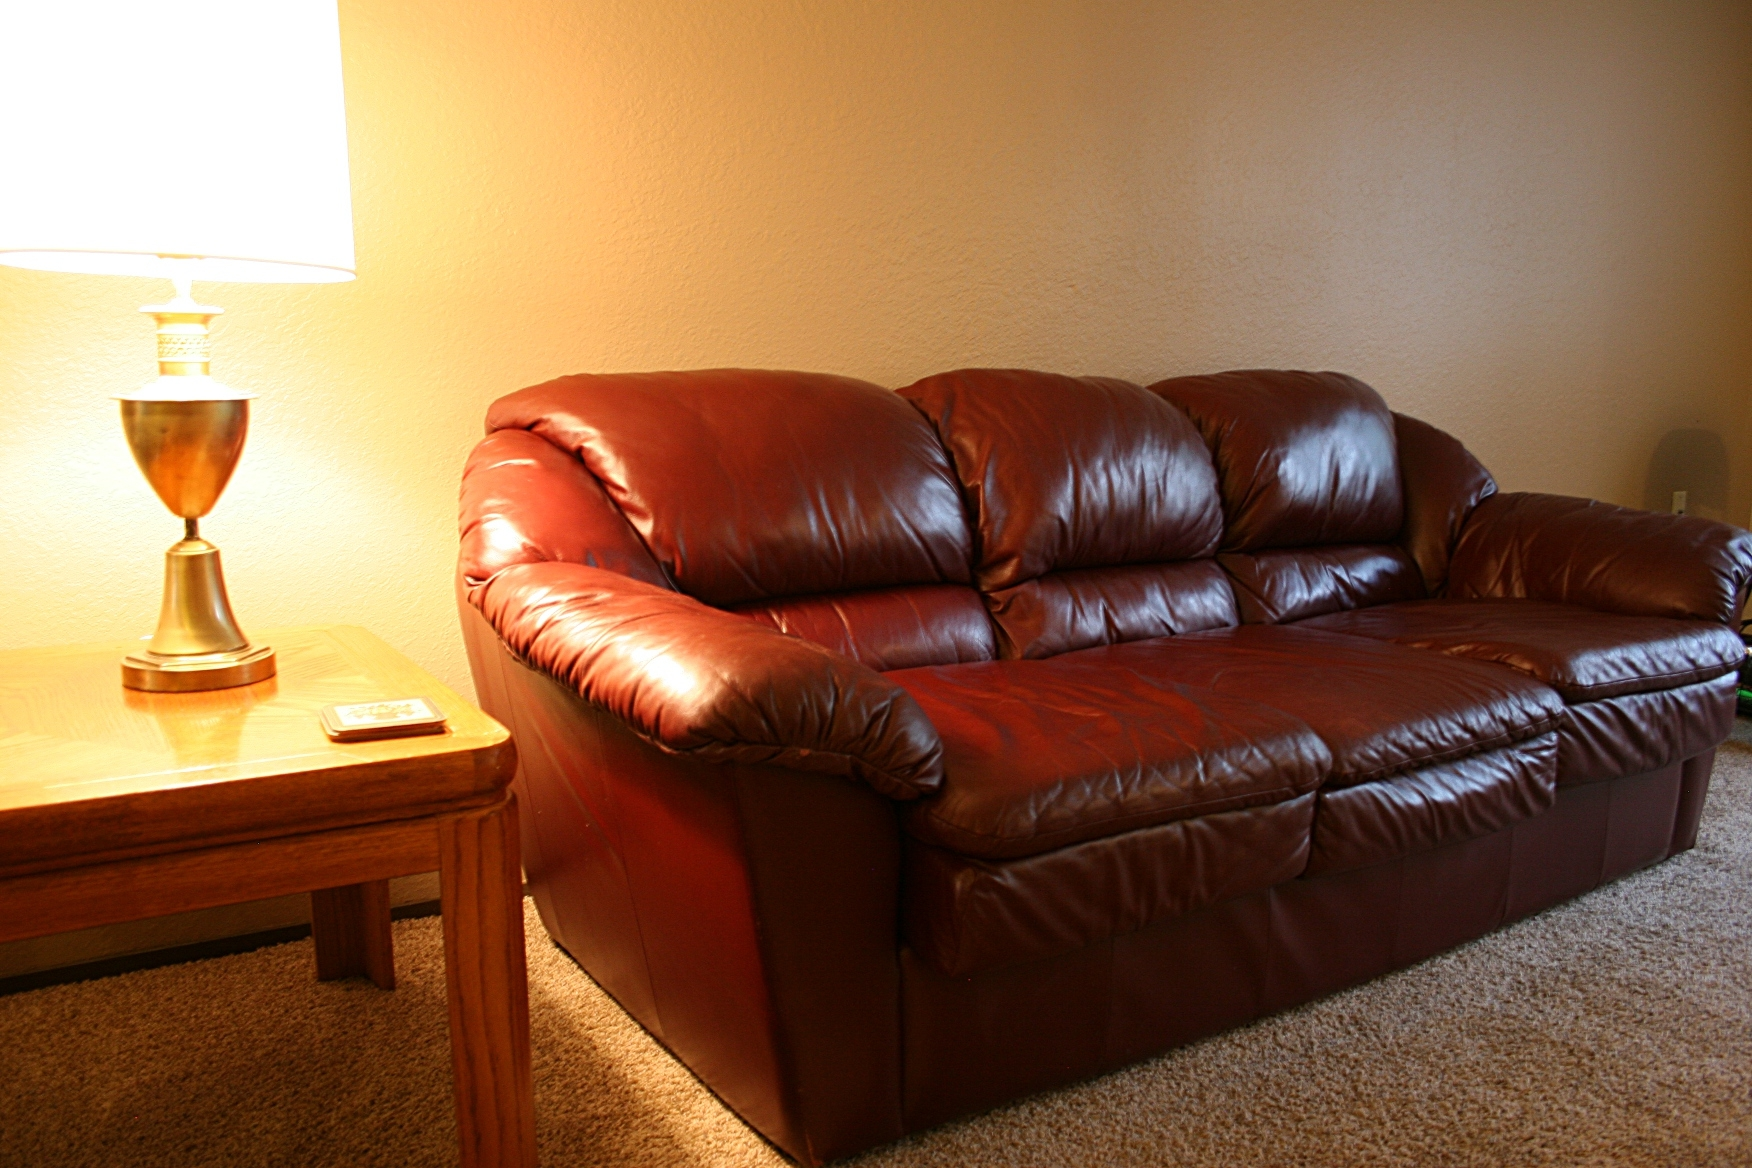 Craigslist Furniture Jacksonville Florida Seoegy Pertaining To Craigslist Leather Sofa (Image 3 of 15)